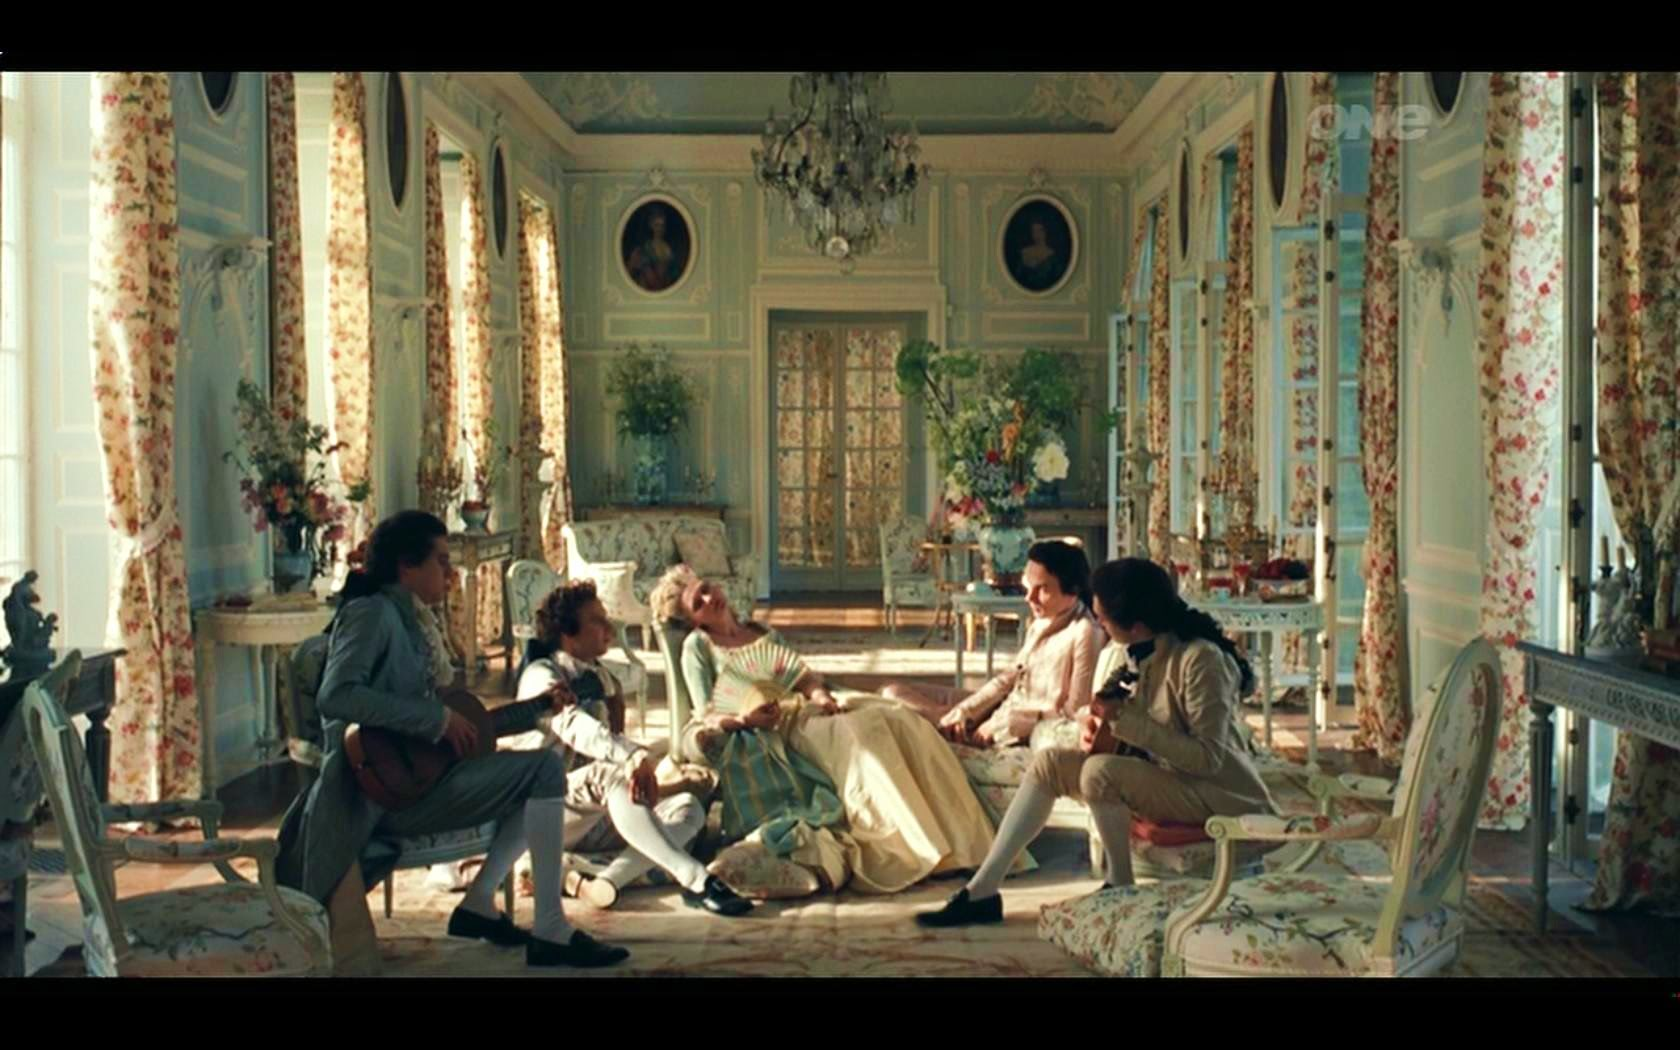 Costume Movie With Extravagance Marie Antoinette The Extravagant Living Room